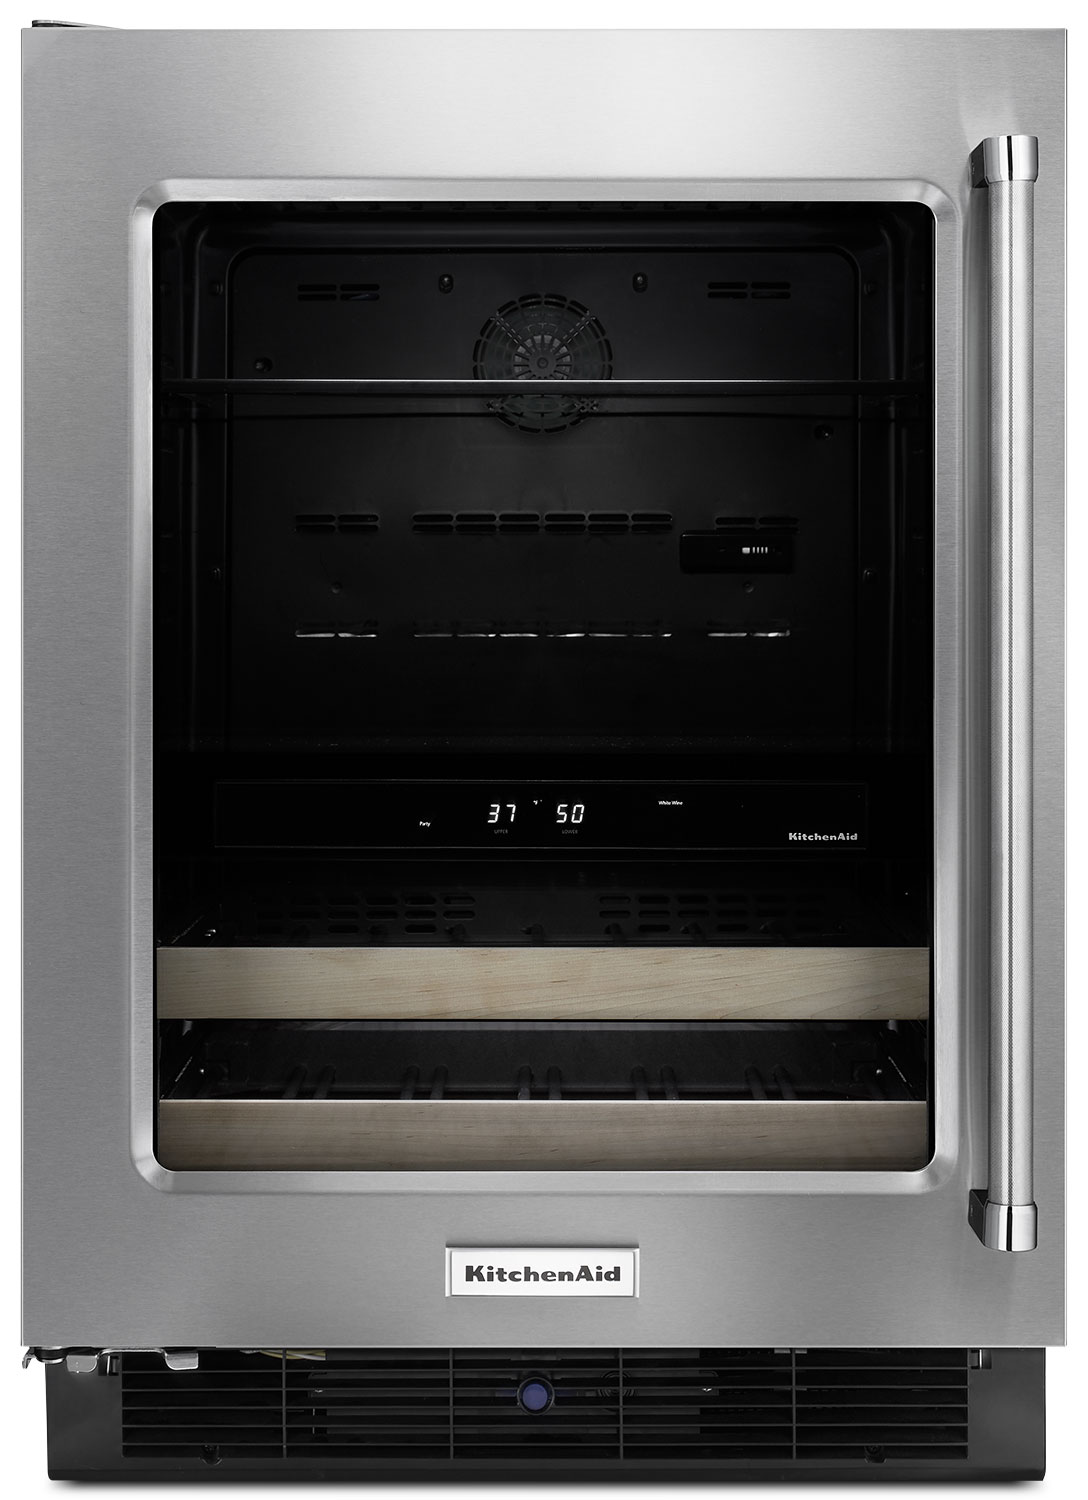 KitchenAid Stainless Steel Beverage Centre (4.8. Cu. Ft.) - KUBL204ESB